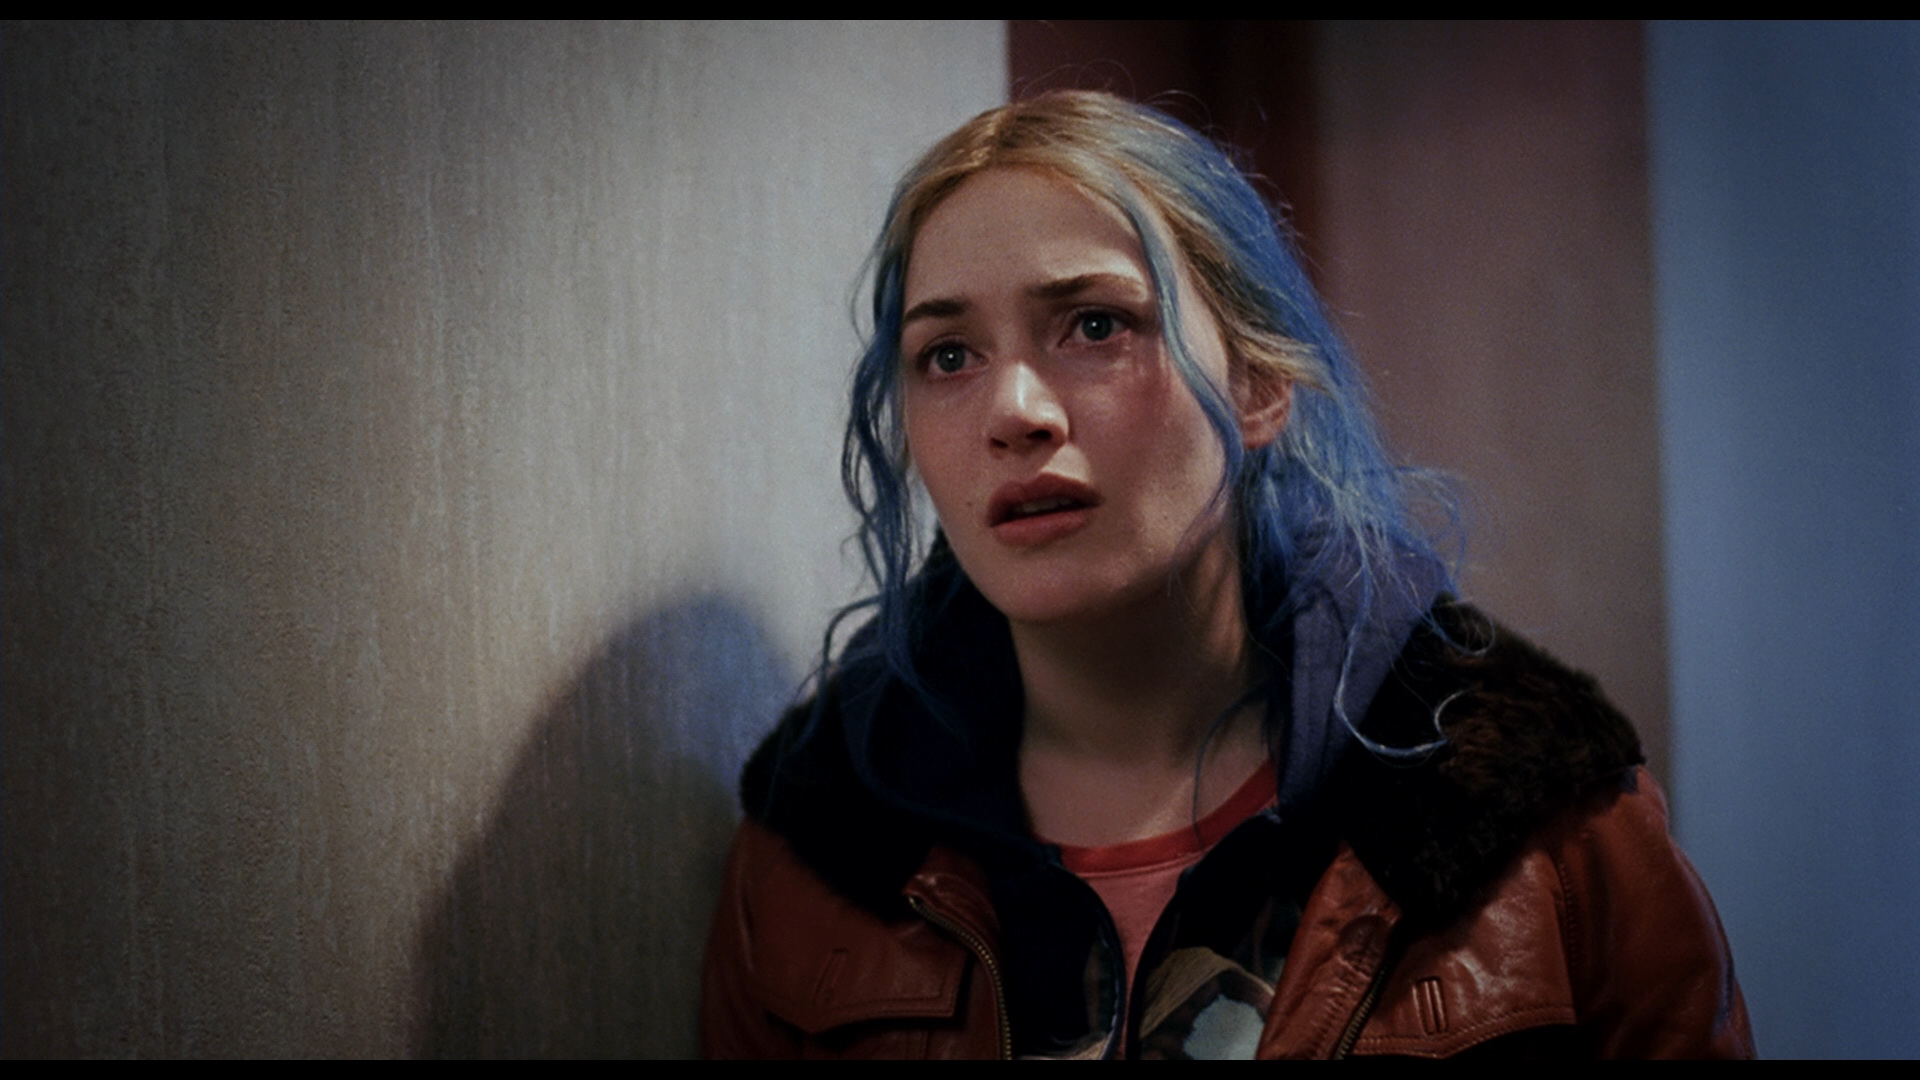 15 Eternal Sunshine Of The Spotless Mind Moments That Gave Us